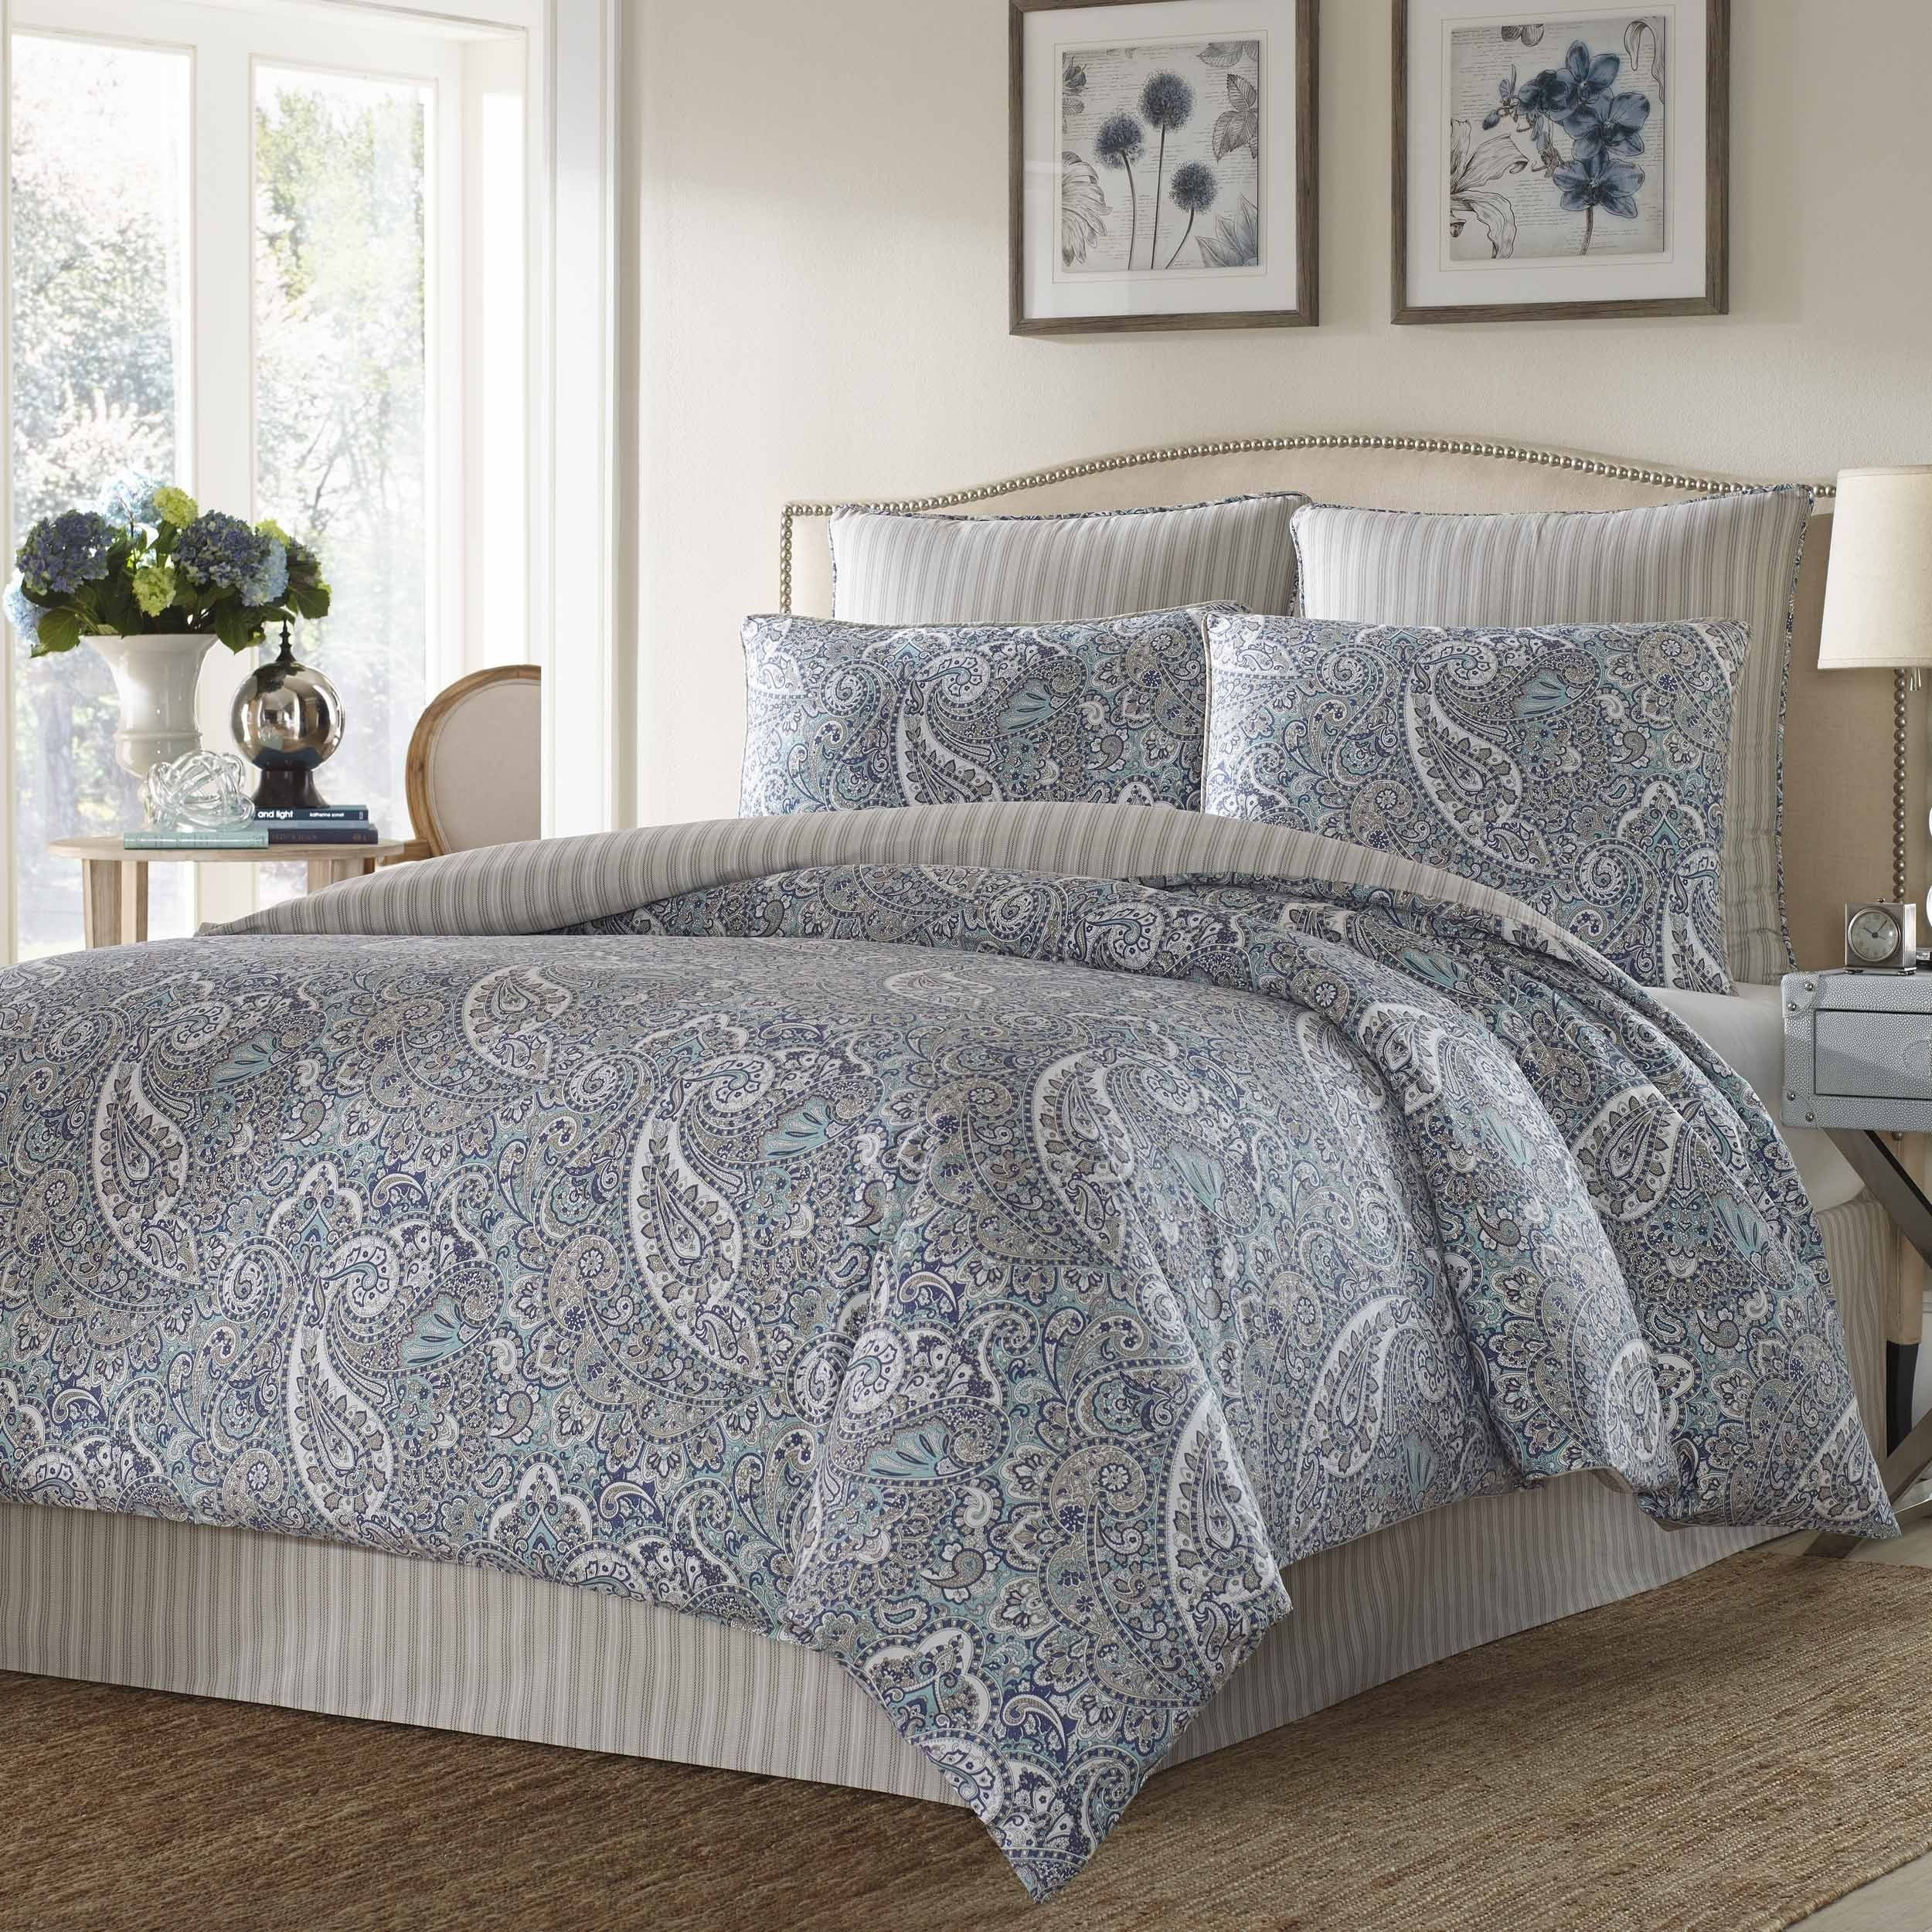 Light Blue Bedroom Set Beautiful Give Your Room A Stunning Finishing touch when You Dress Up